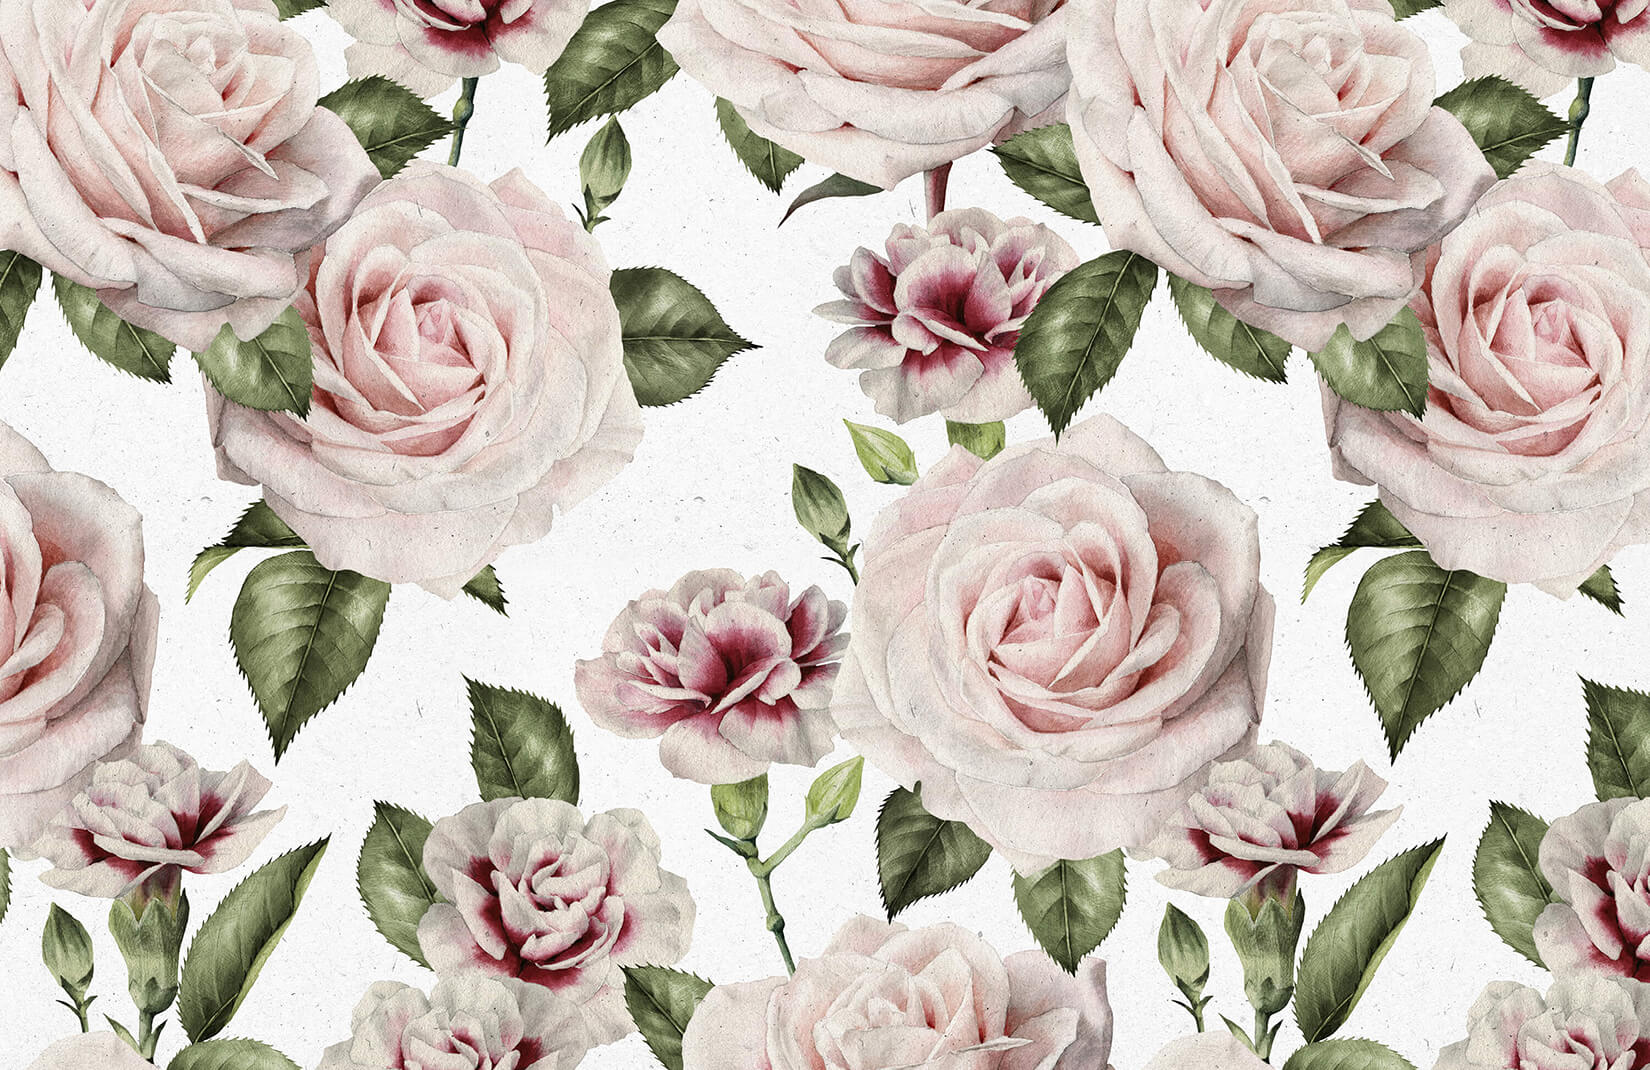 Vintage Car Design Wallpaper Vintage Roses And Carnation Wallpaper Murals Wallpaper